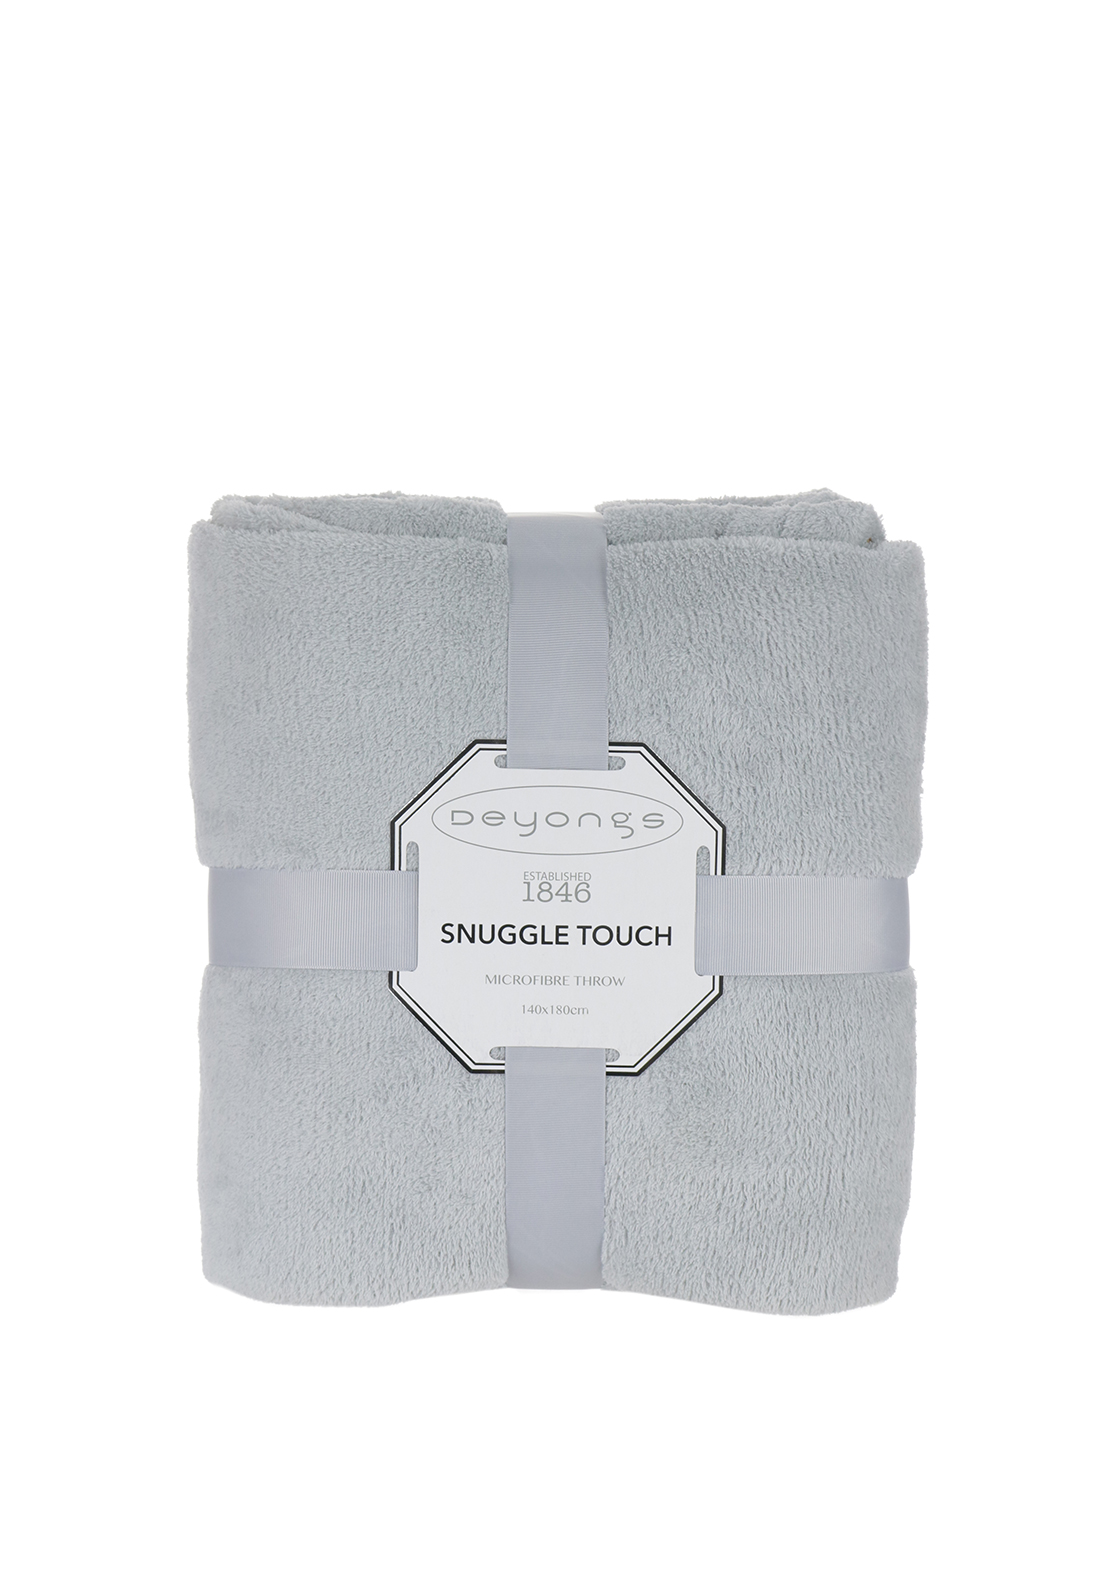 Deyongs Snuggle Touch Throw Silver